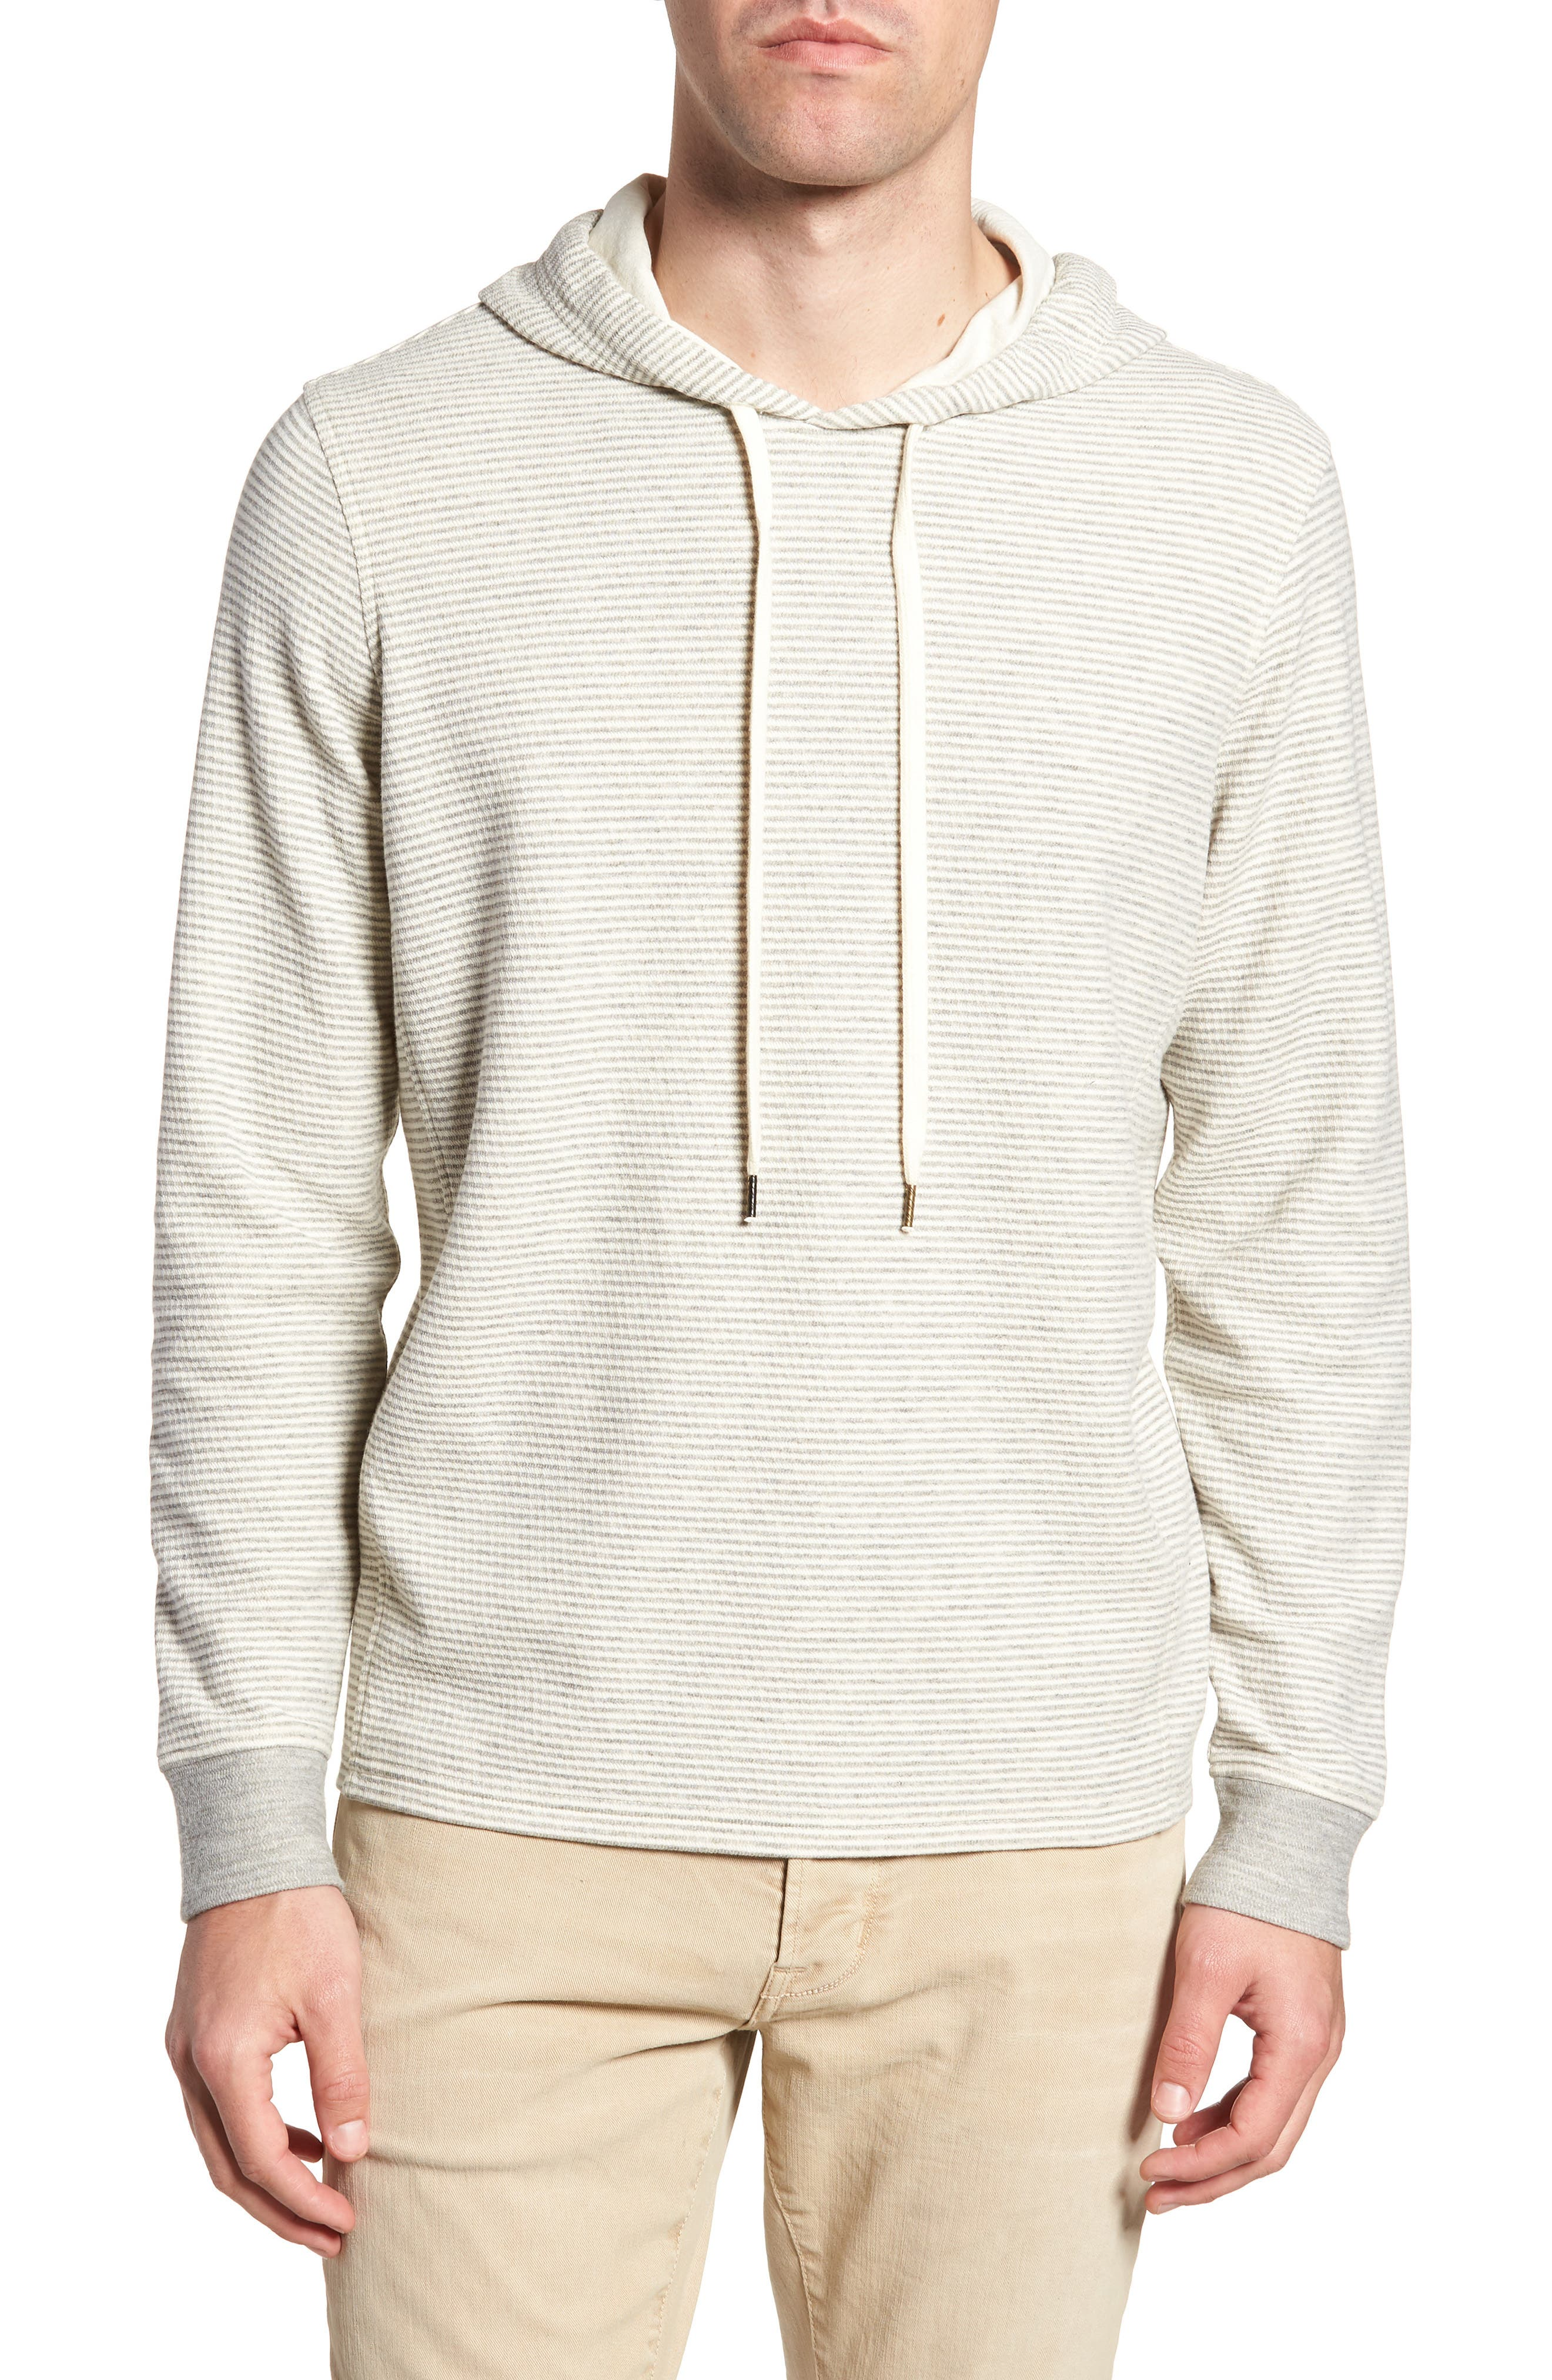 Cotton Blend Hoodie,                         Main,                         color, GREY/ NATURAL